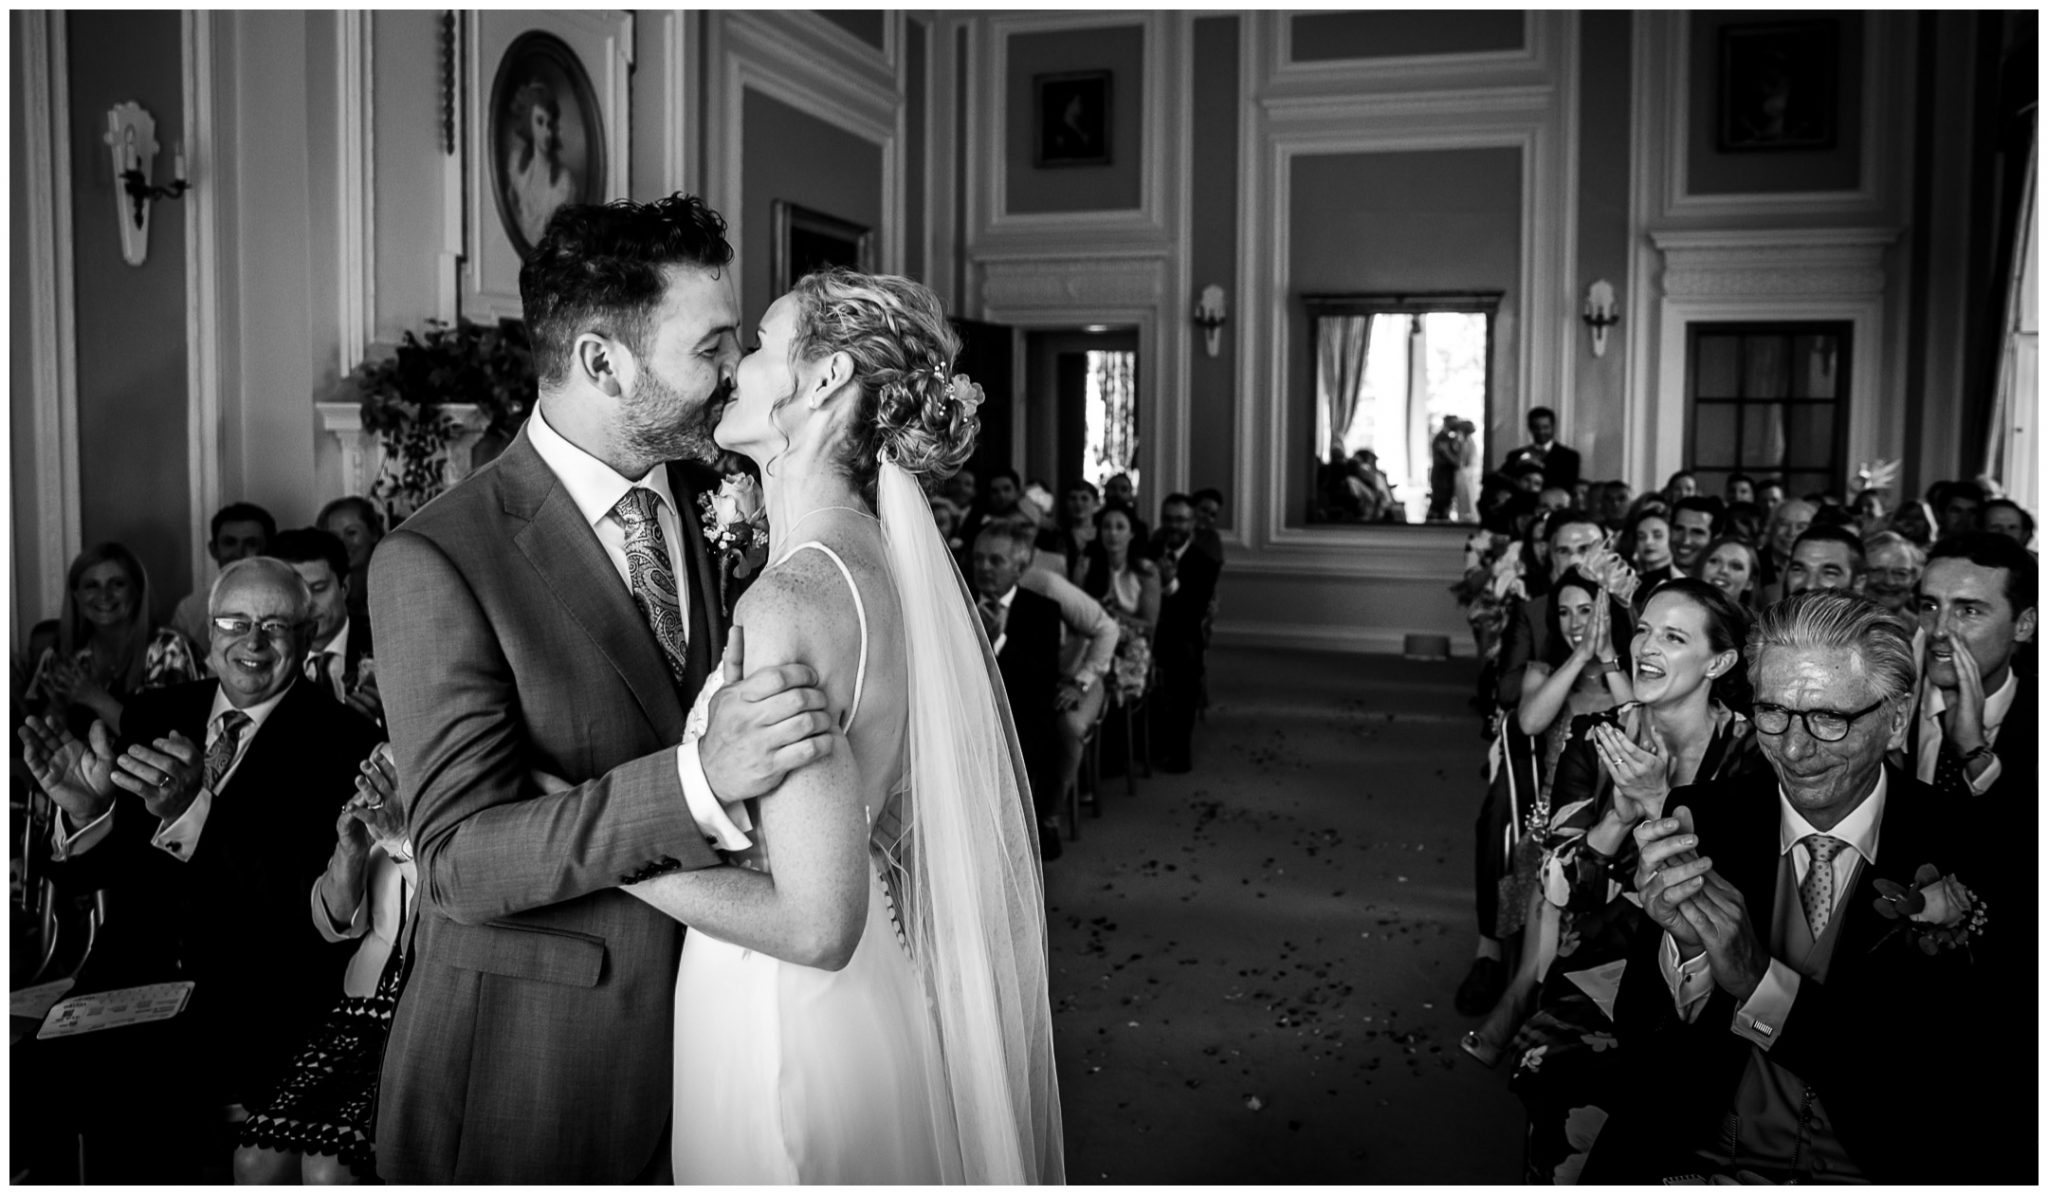 The first kiss of the newly married couple as they are announced as husband and wife